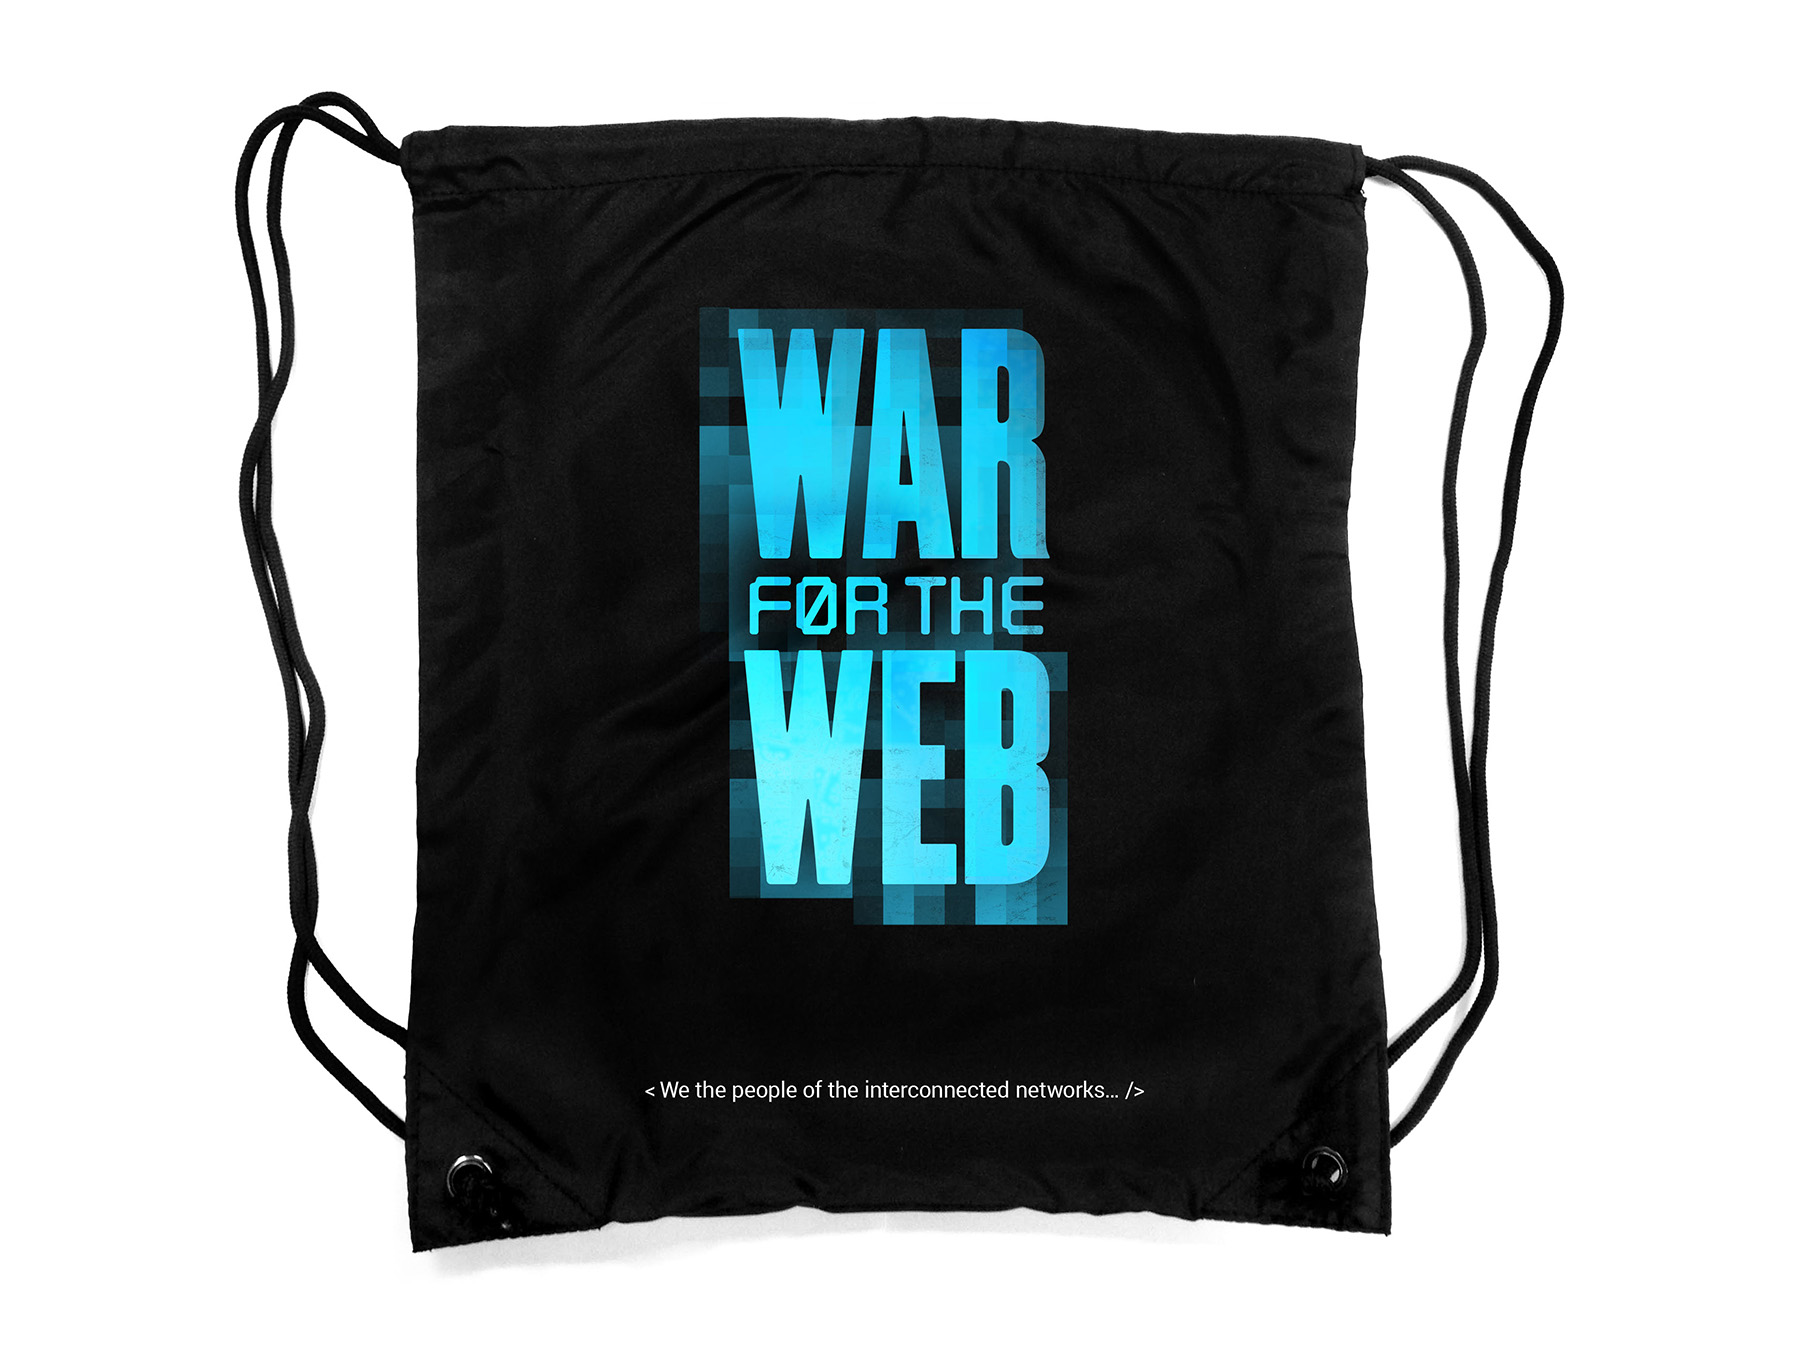 War_for_the_Web_bag.jpg